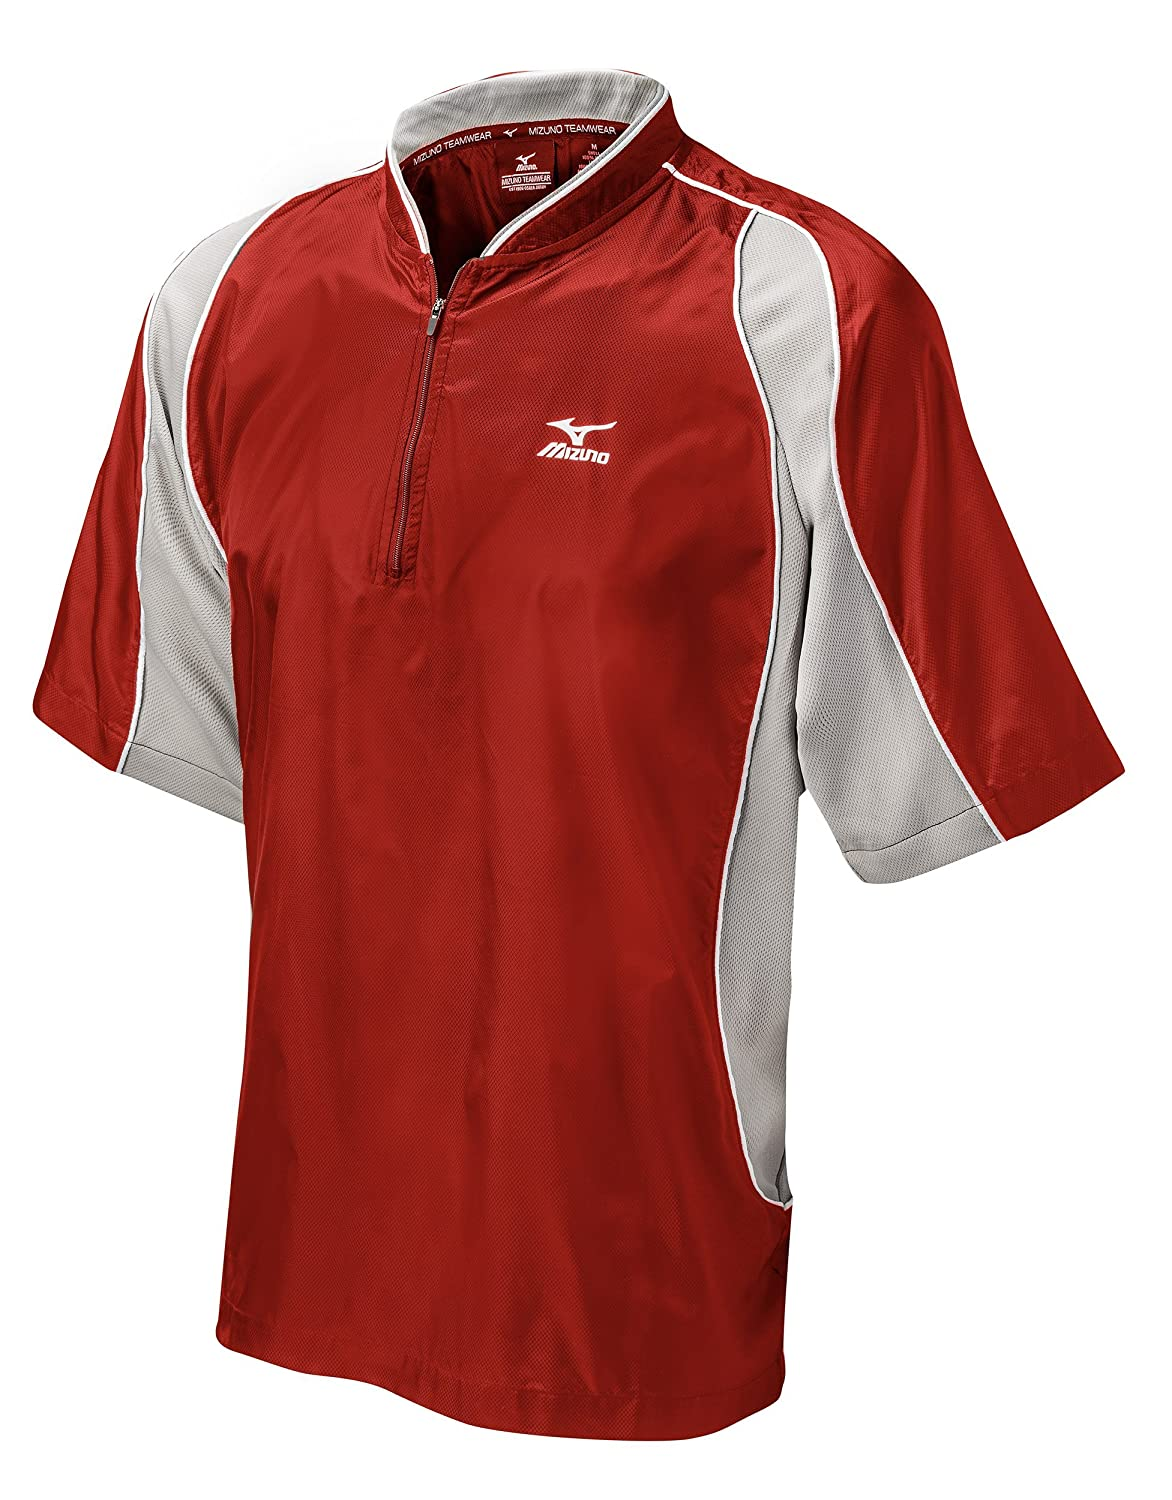 Mizuno Protect Batting Jersey 350418.9090.06.L-P